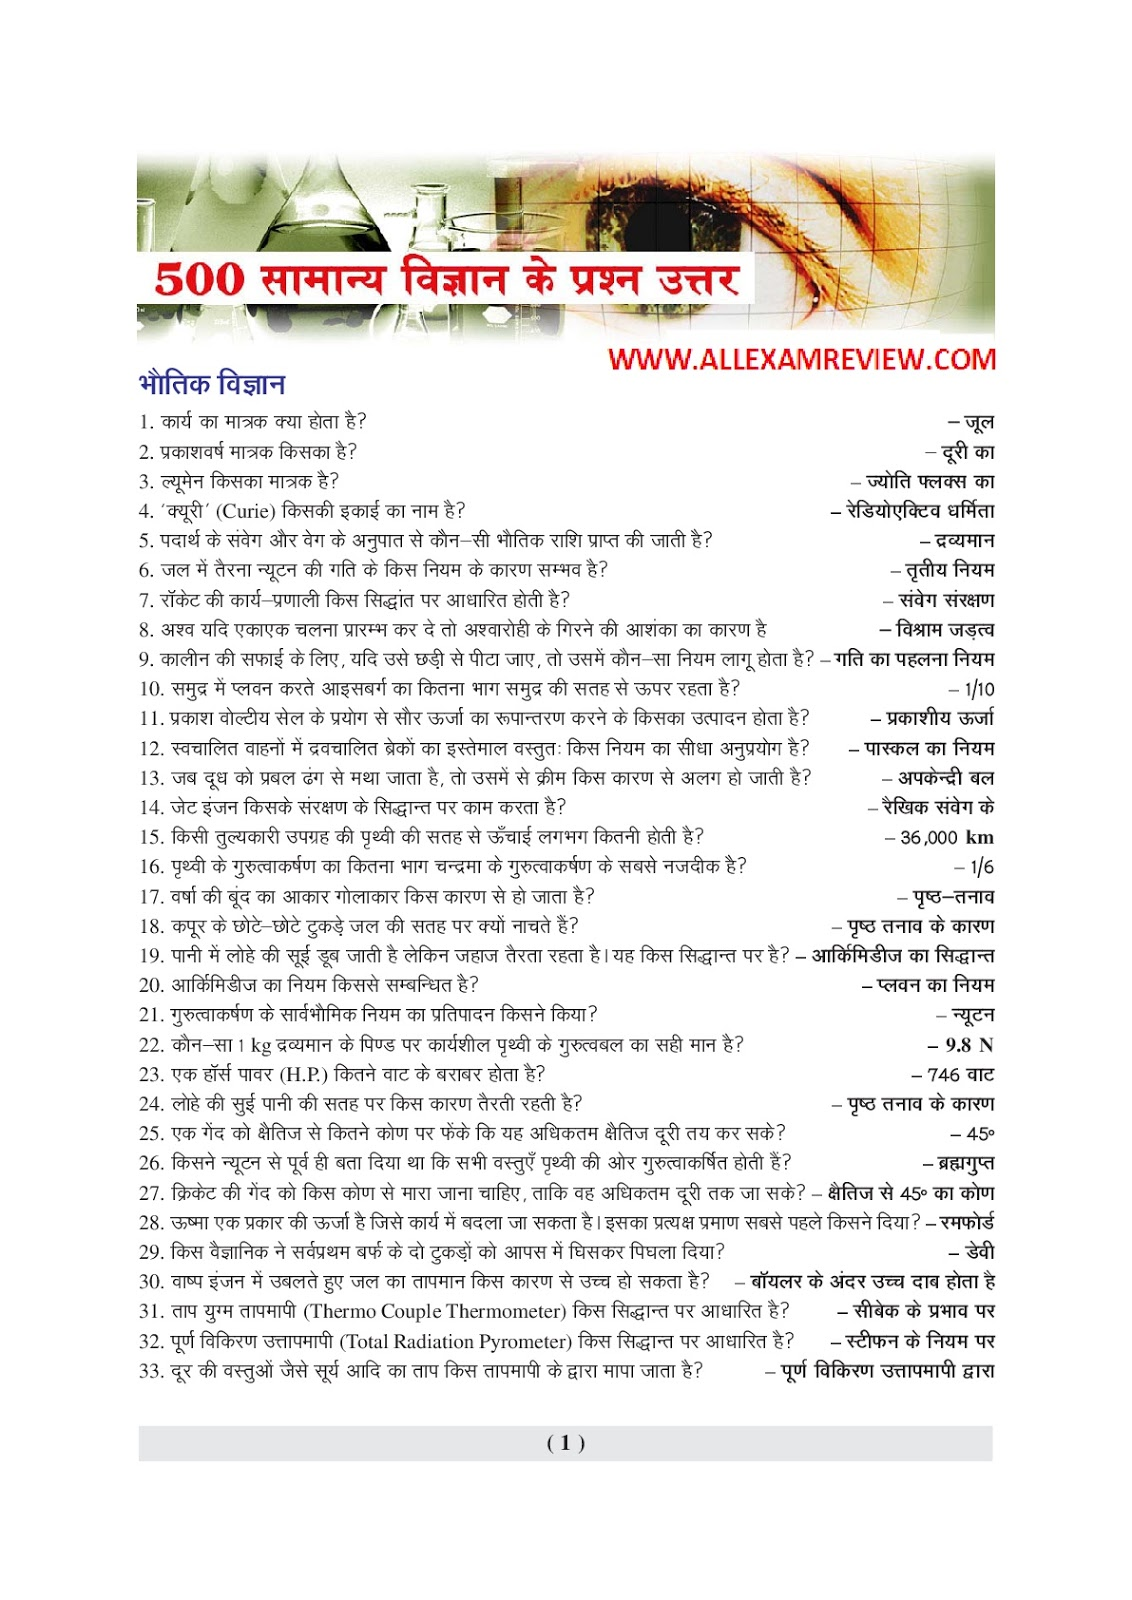 500 GENERAL SCIENCE IMPORTANT QUESTIONS AND ANSWERS PDF IN HINDI